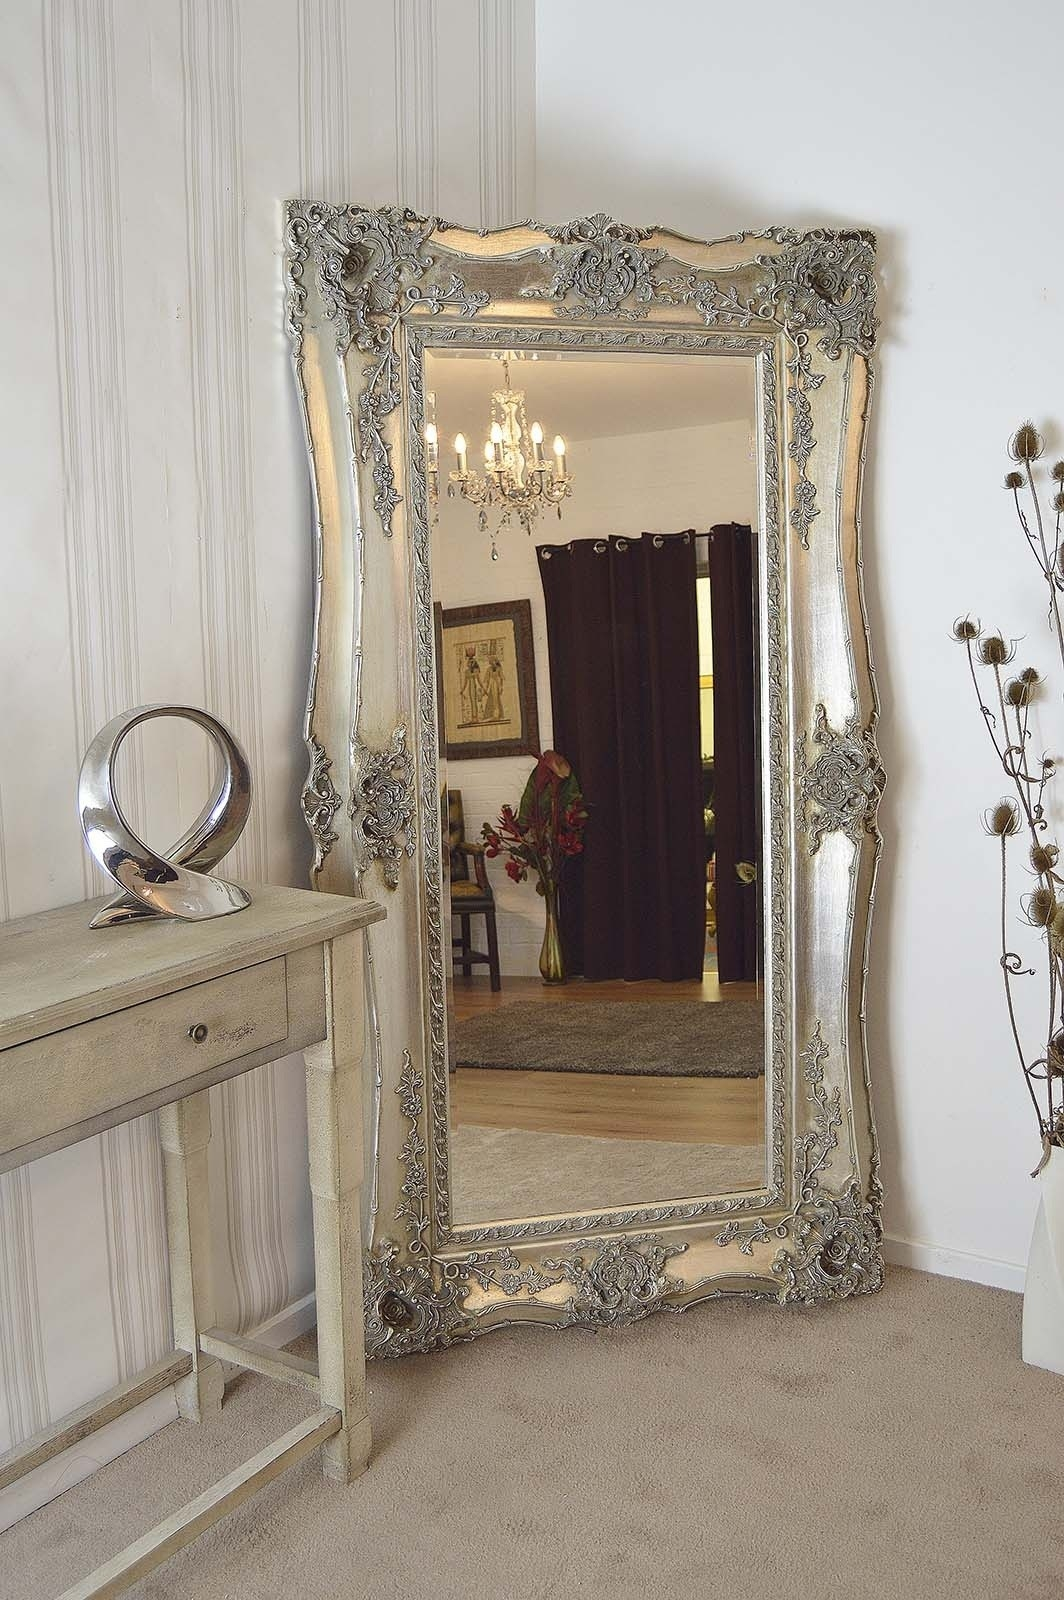 Bedroom Furniture Large Gold Mirror Free Standing Mirror Wooden Pertaining To Antique Large Mirrors (Image 7 of 15)